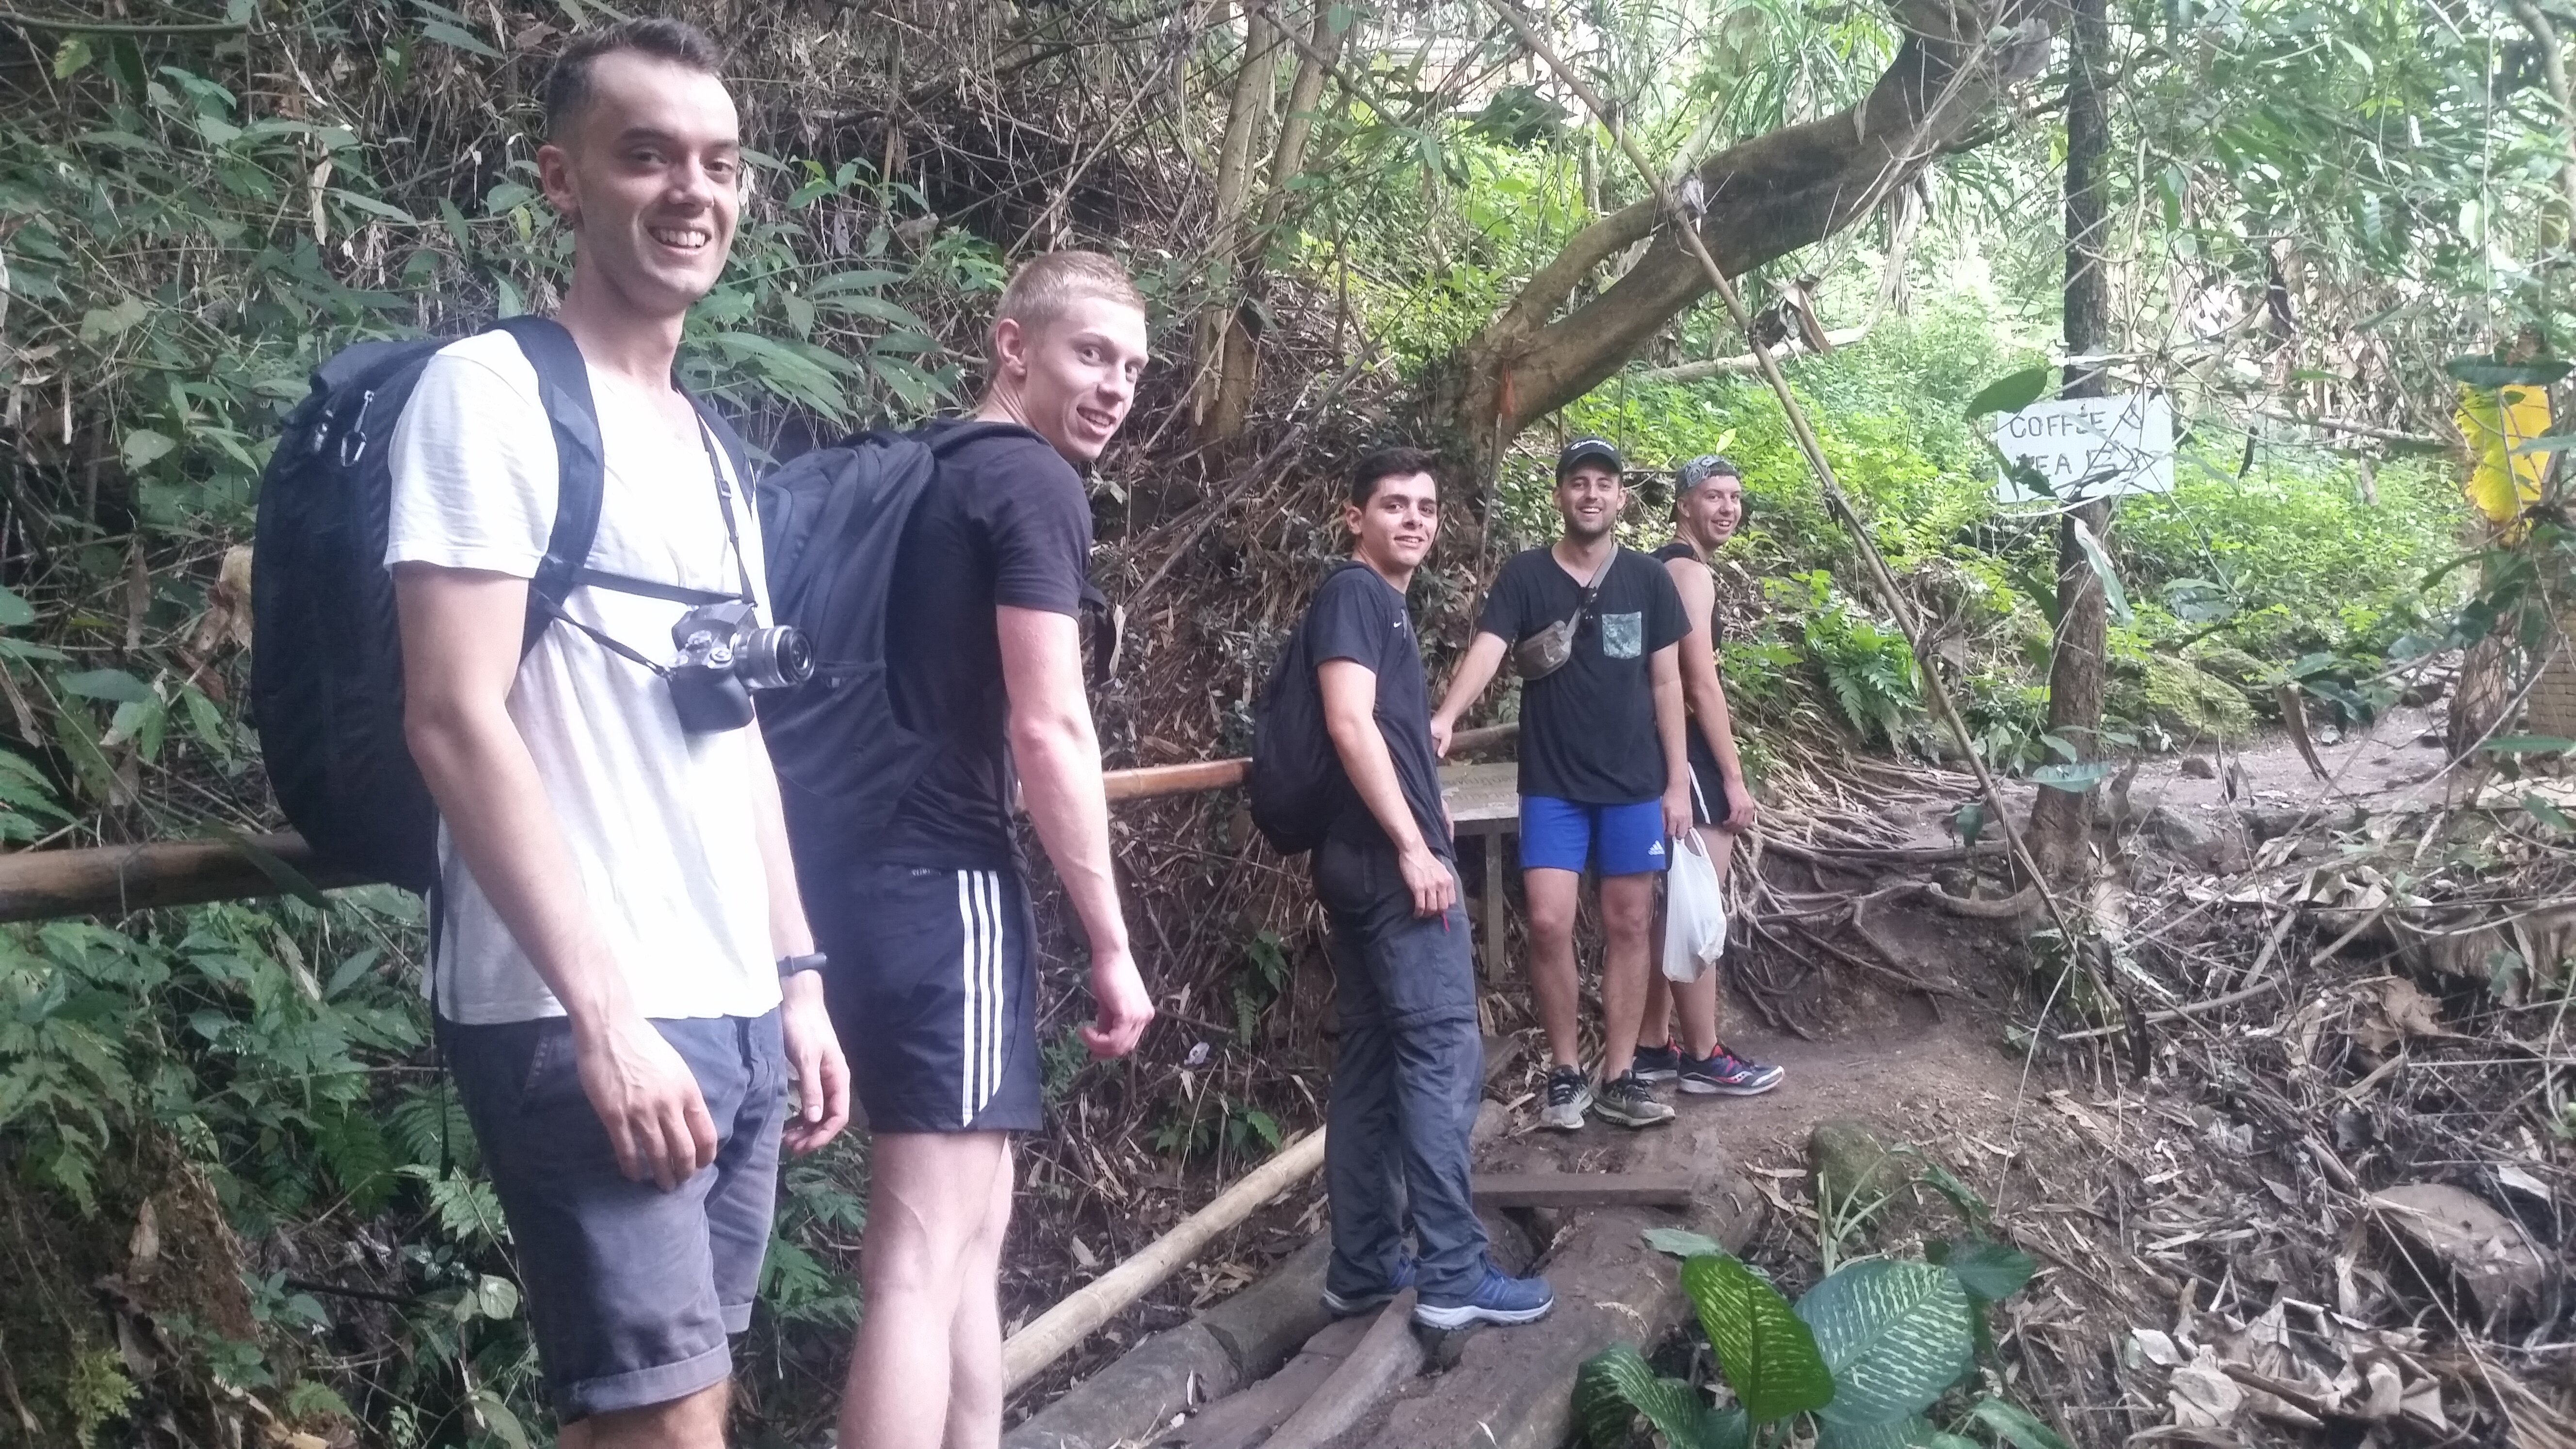 Crossing a small wooden bridge before the hidden temple.